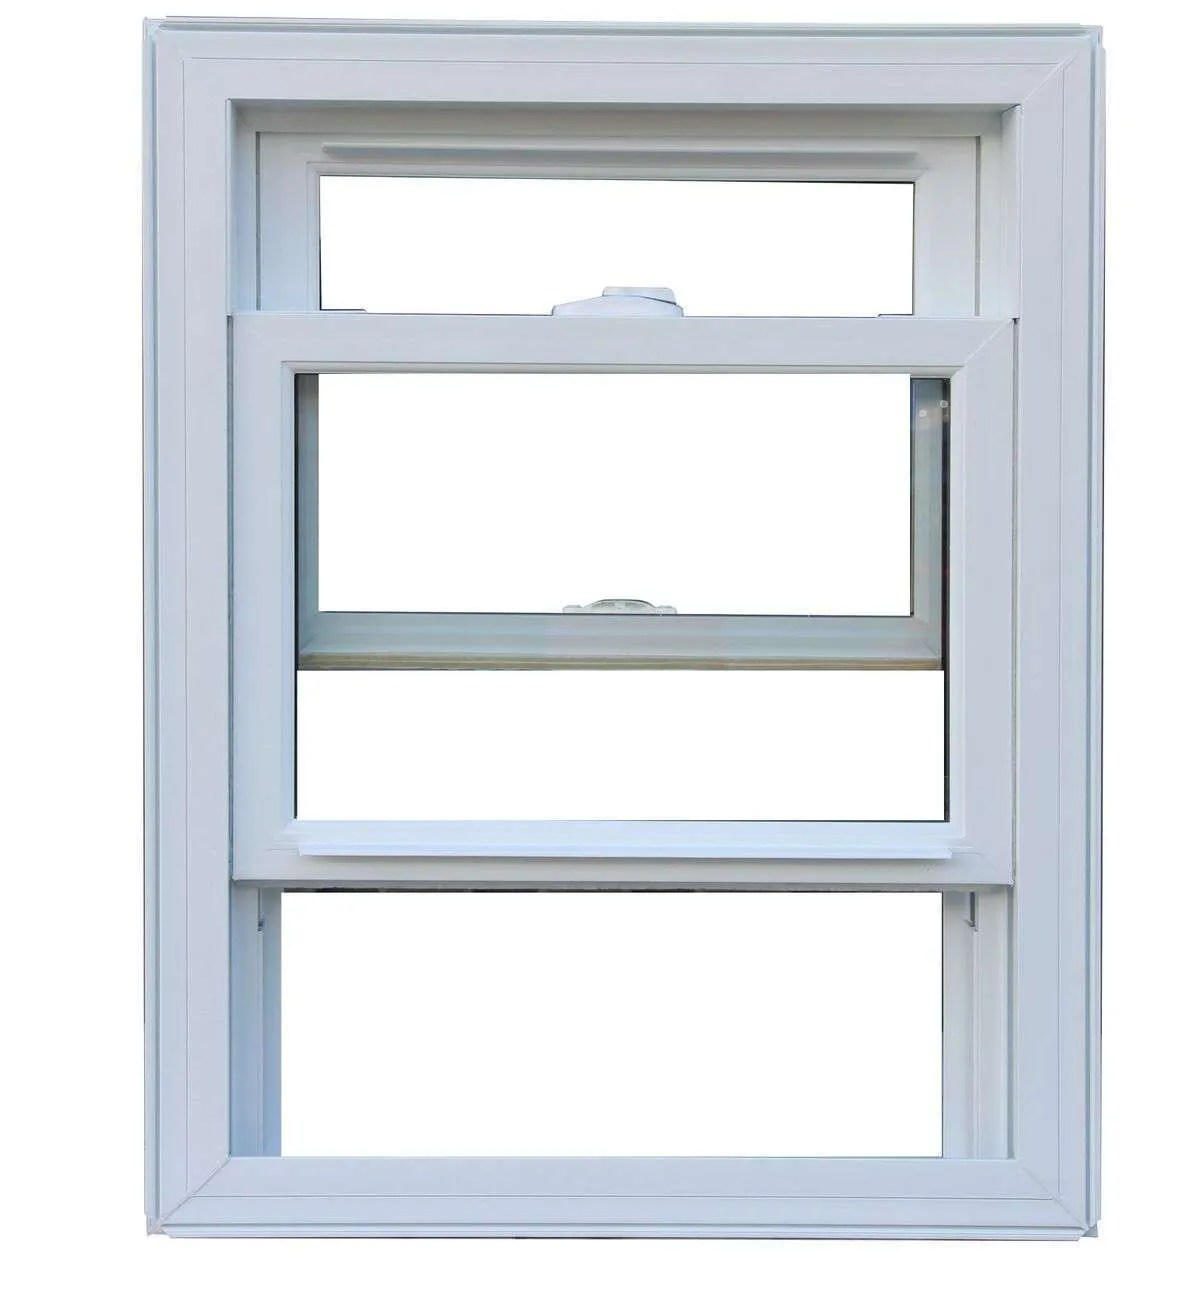 Farley Window Hung Window Farley Windows Doors